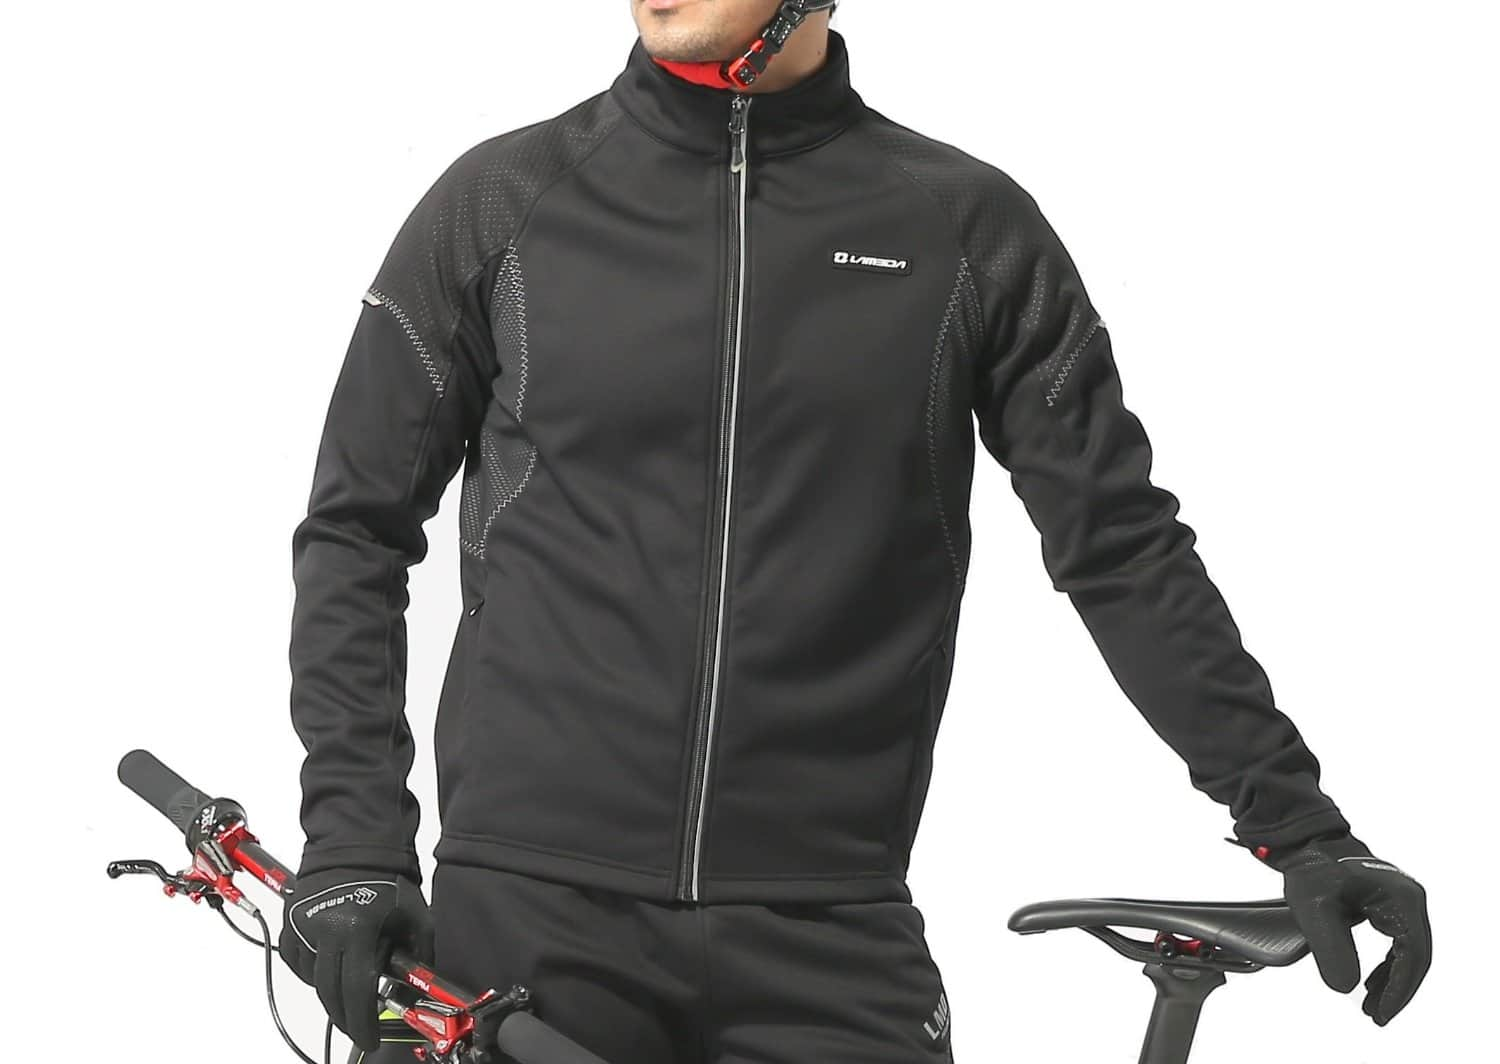 Windproof Full Zip Wind Jacket with 3-layers Composite Stretchy Fabric on sale for $24.99